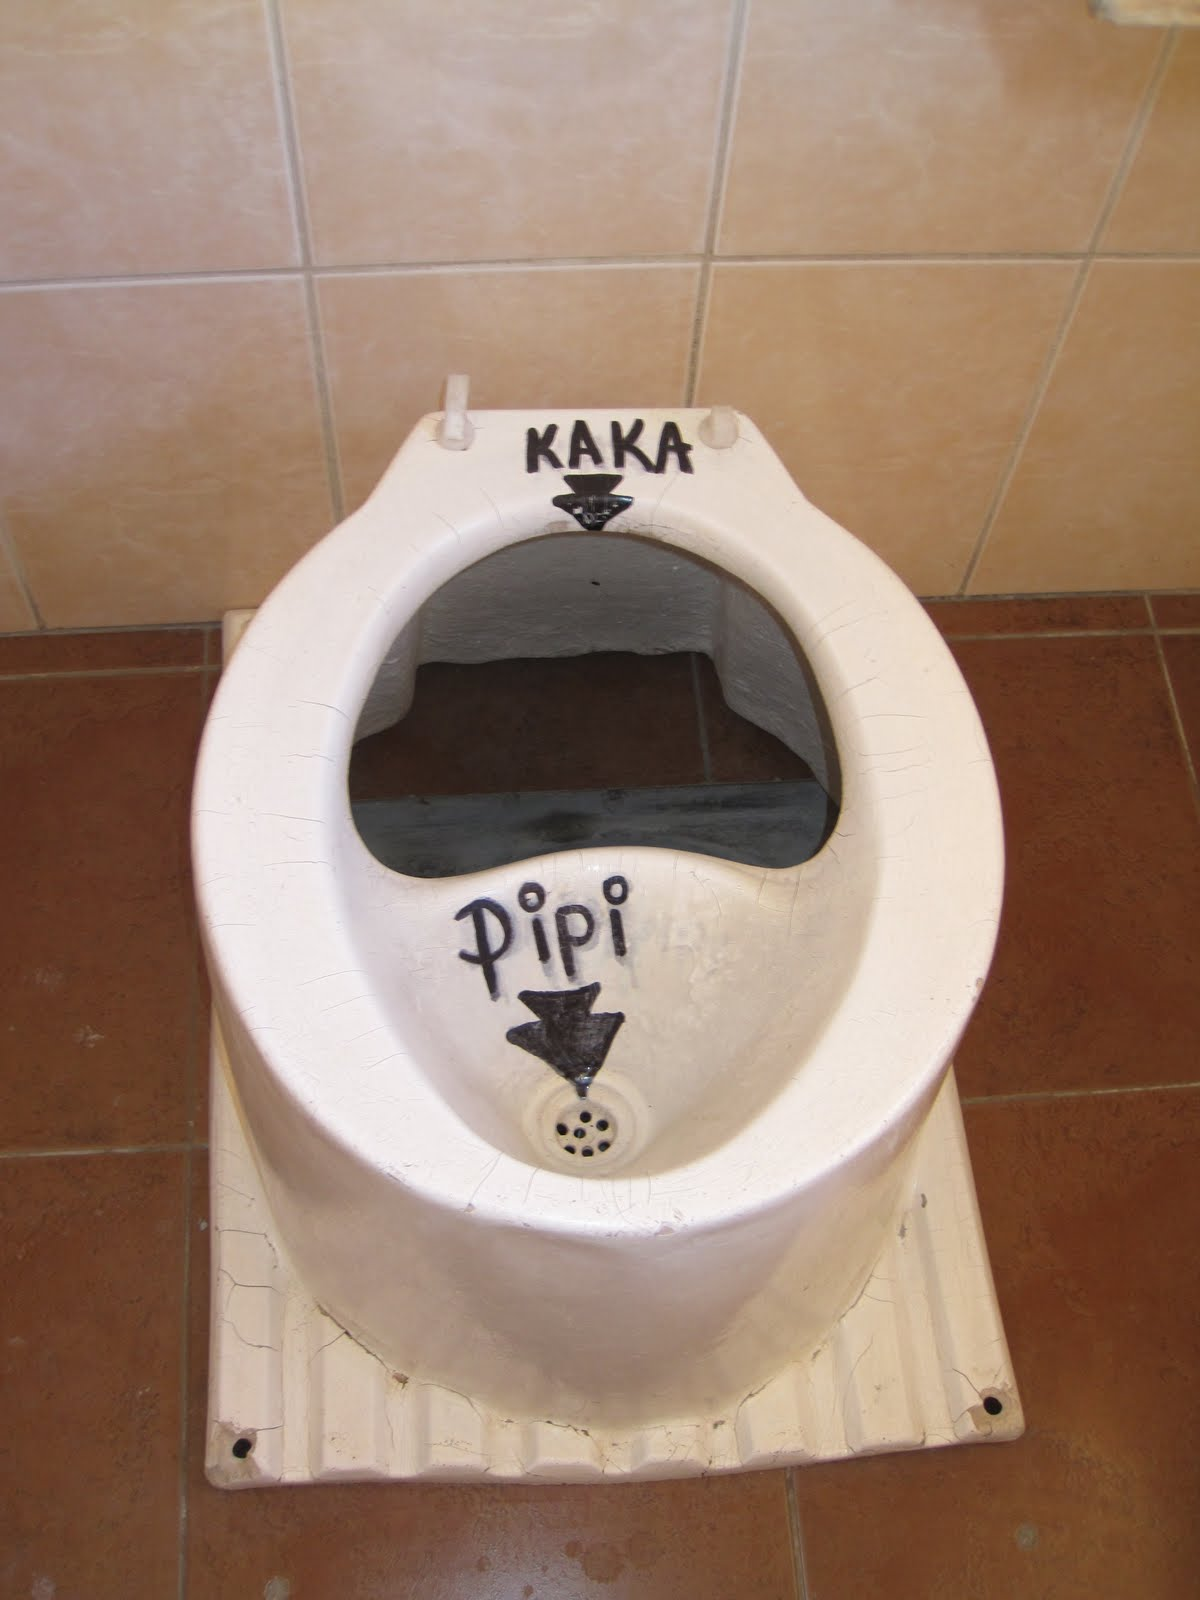 Tour de South America: Interesting toilet